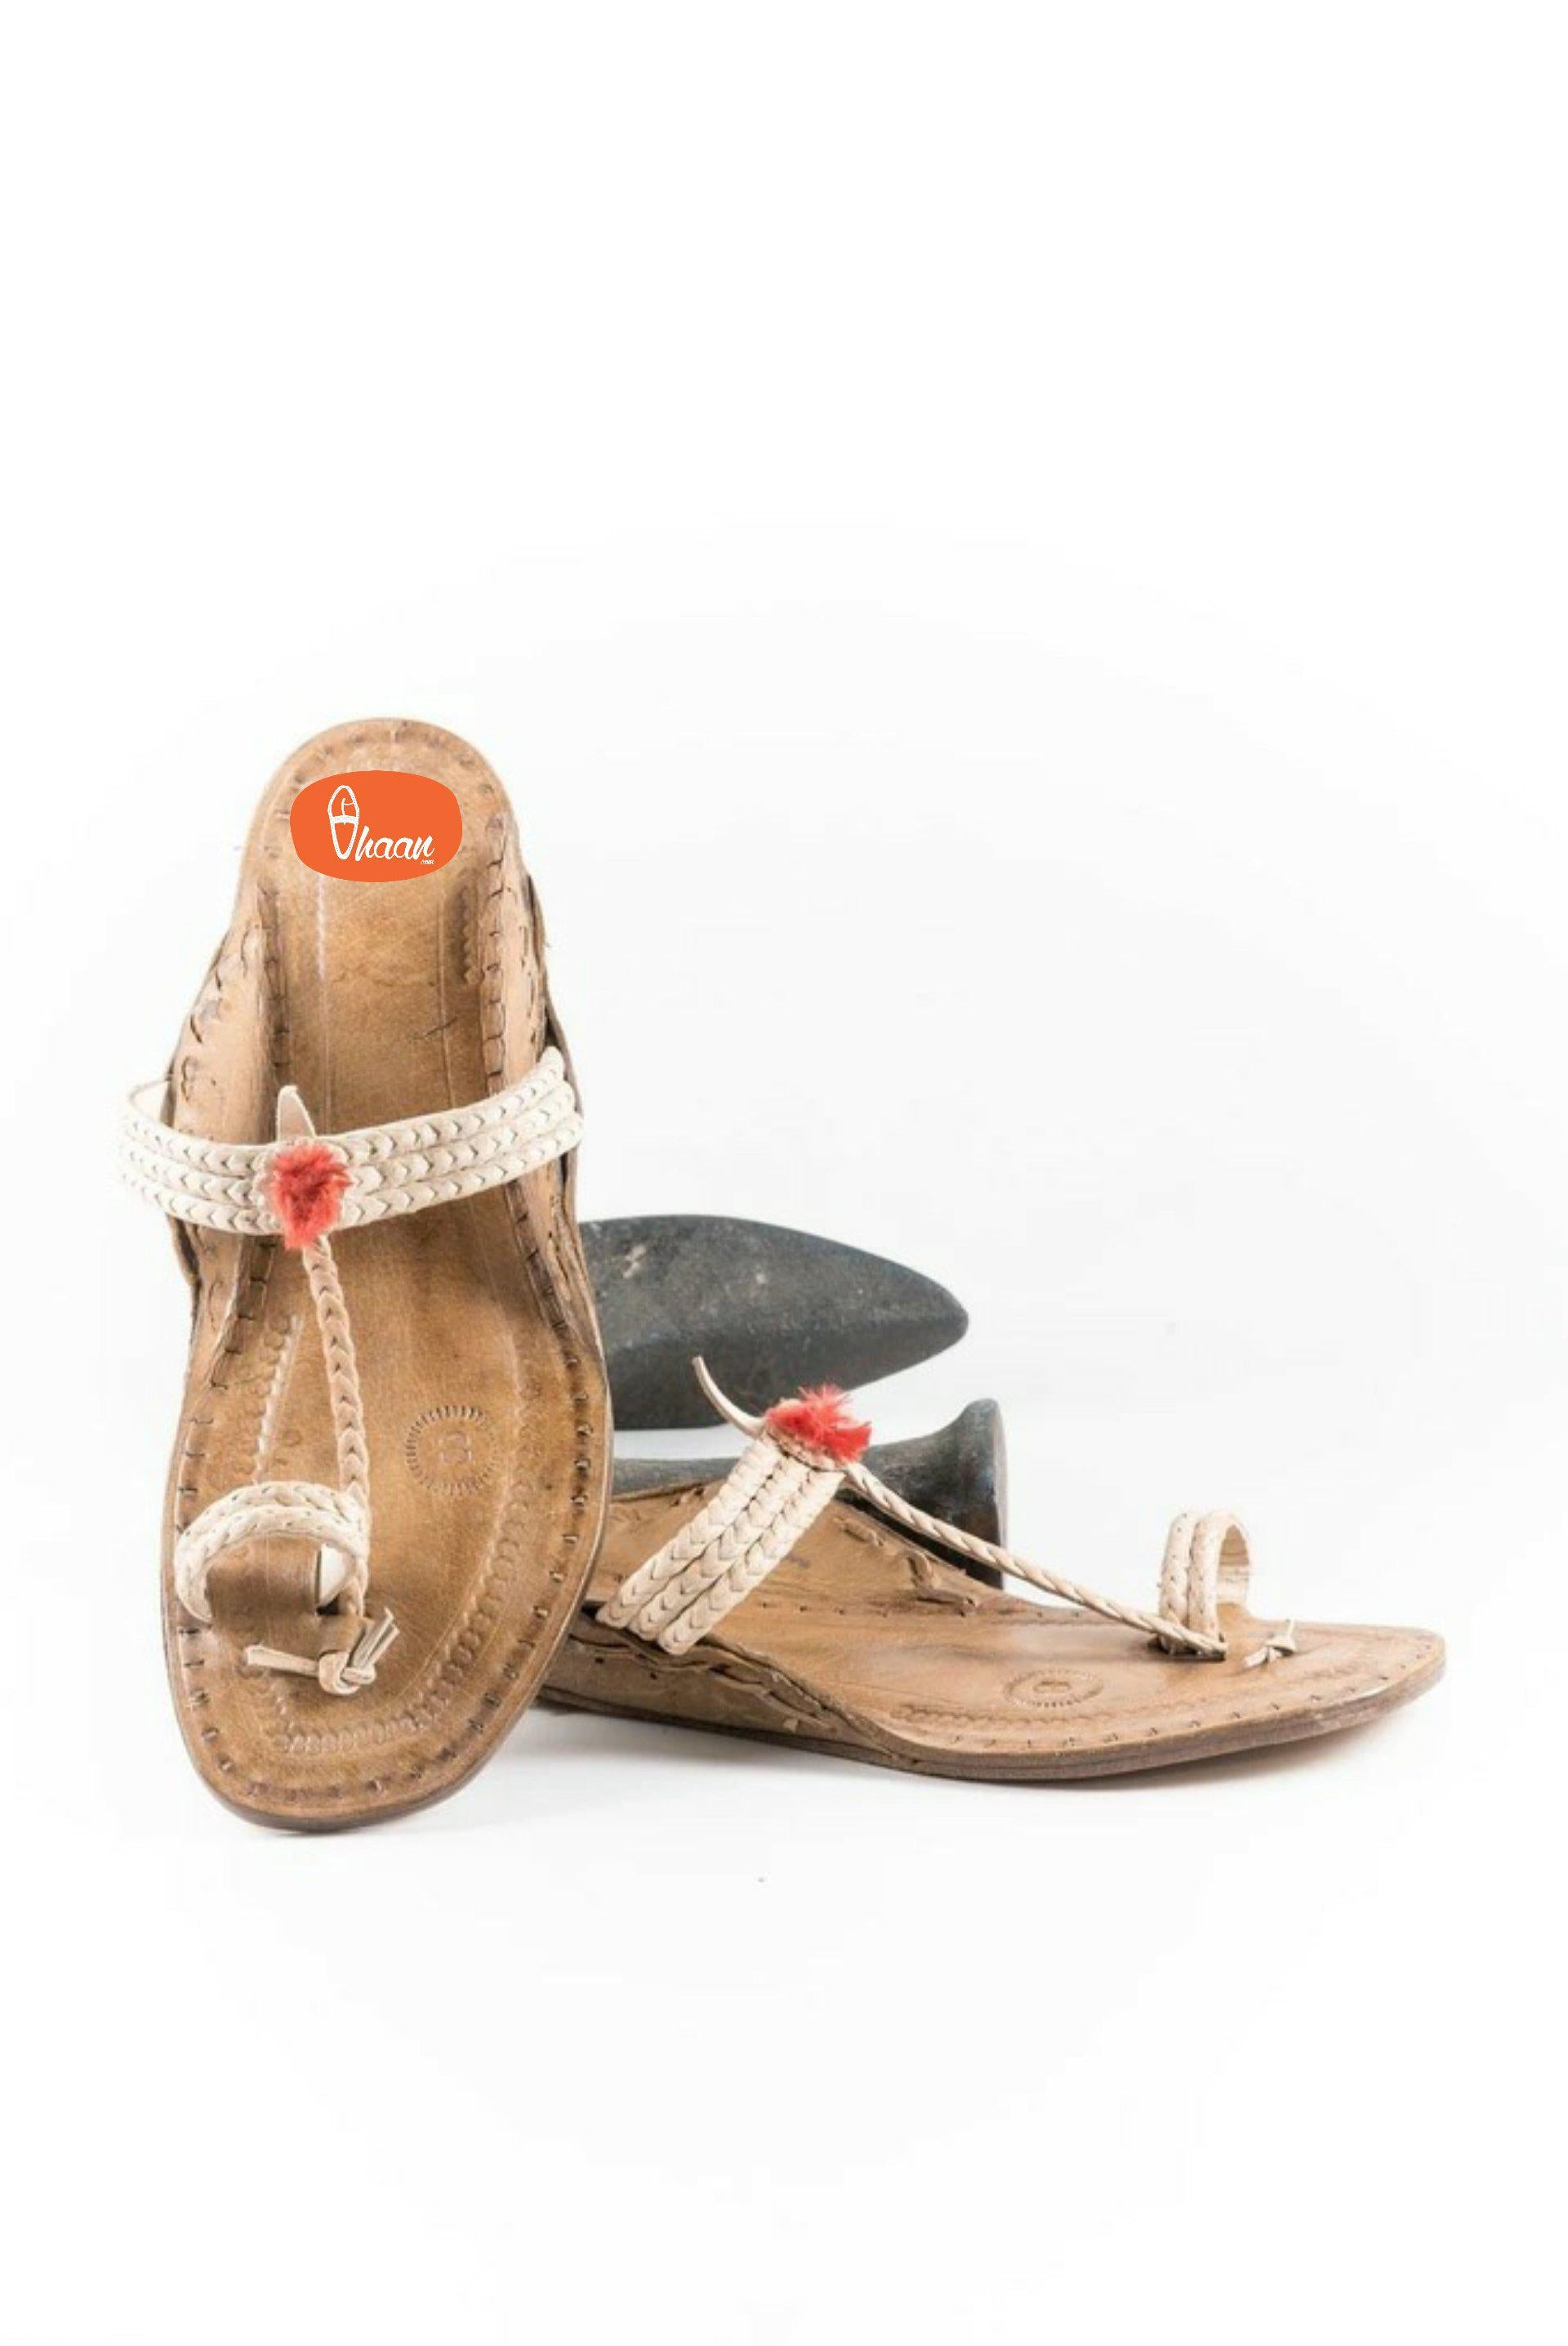 Three Braided Pure leather handicraft ladies kolhapuri chappal by vhaan